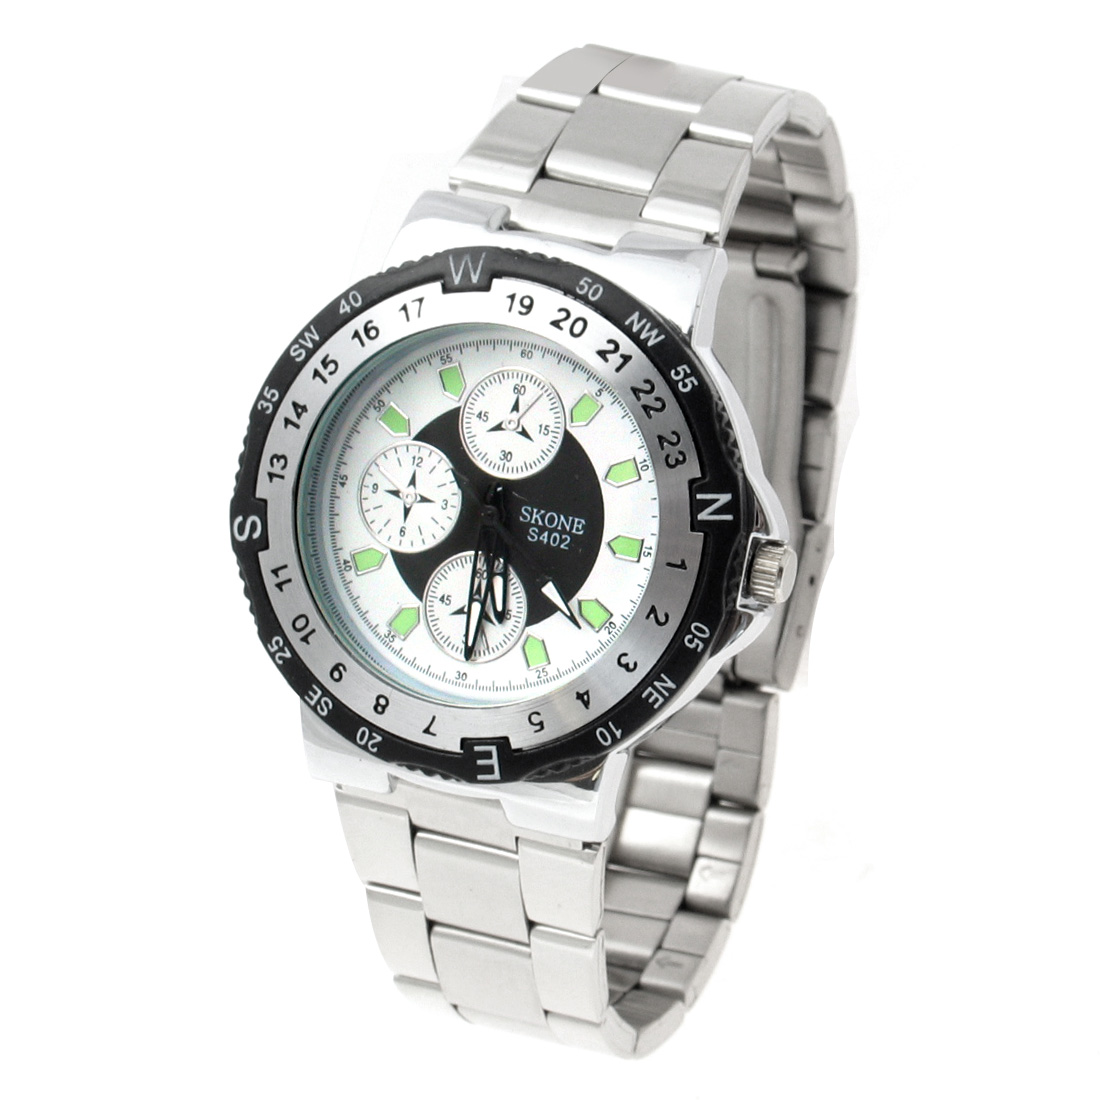 Fashion Jewelry Sports Quartz Watch Wrist Watch